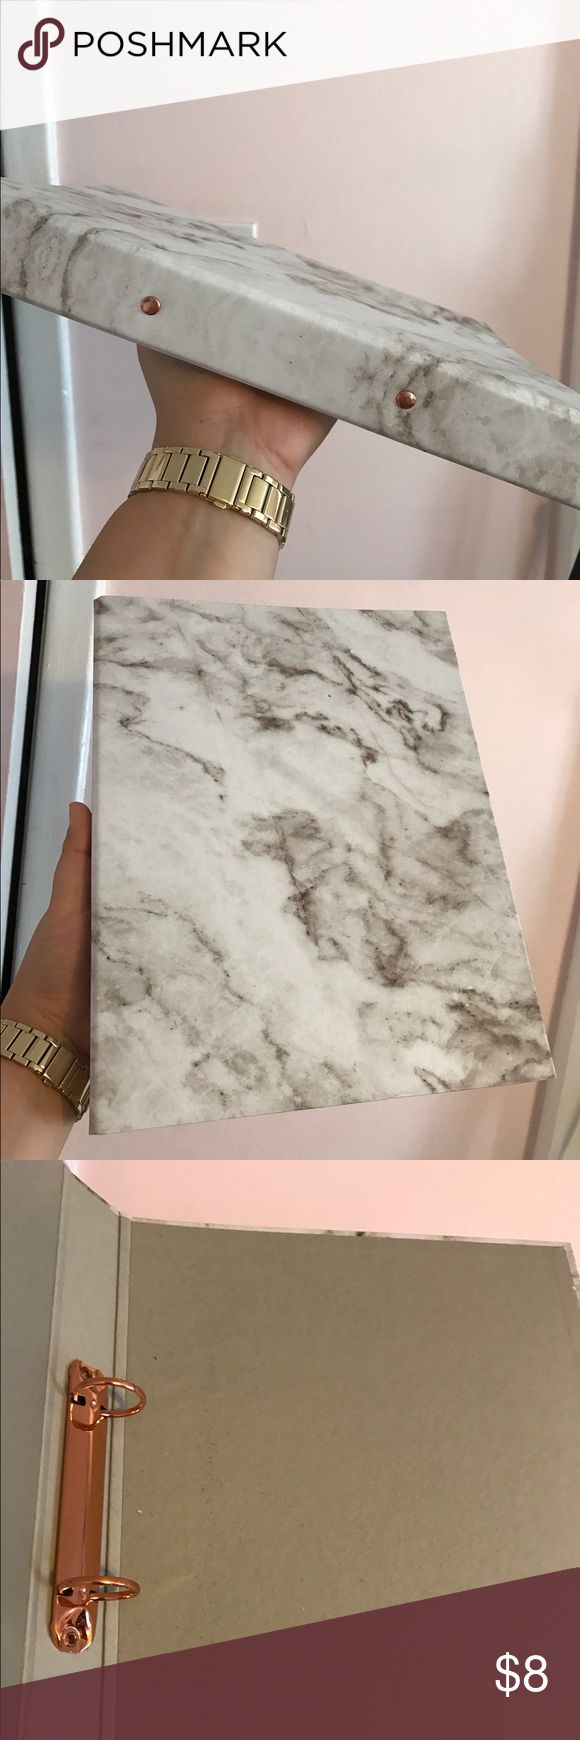 Marble Print and Rose Gold Stationary Binder Classy and trendy marble print stationary binder with adorable rose gold clips on the inside! Never been used! A cute addition for a graduation gift for gals going off to college or finishing college! Add a monogram, sticker, or even keep it plain. You're guaranteed to have the best looking school supplies in class with this one. Other